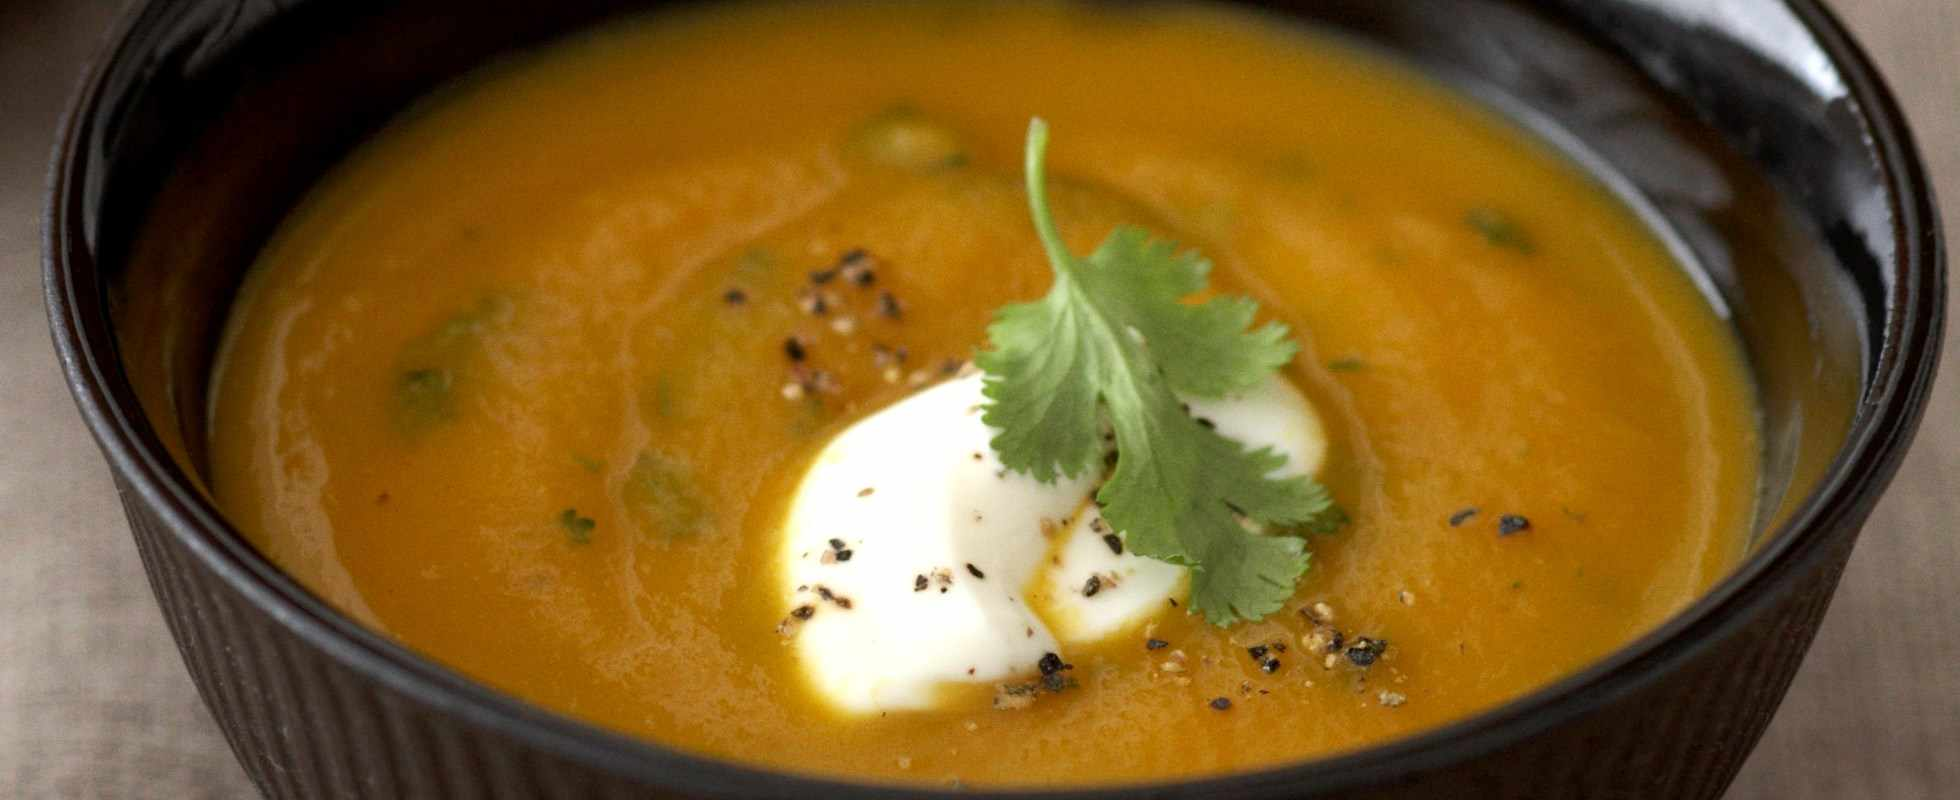 Carrot and cumin soup with fresh coriander